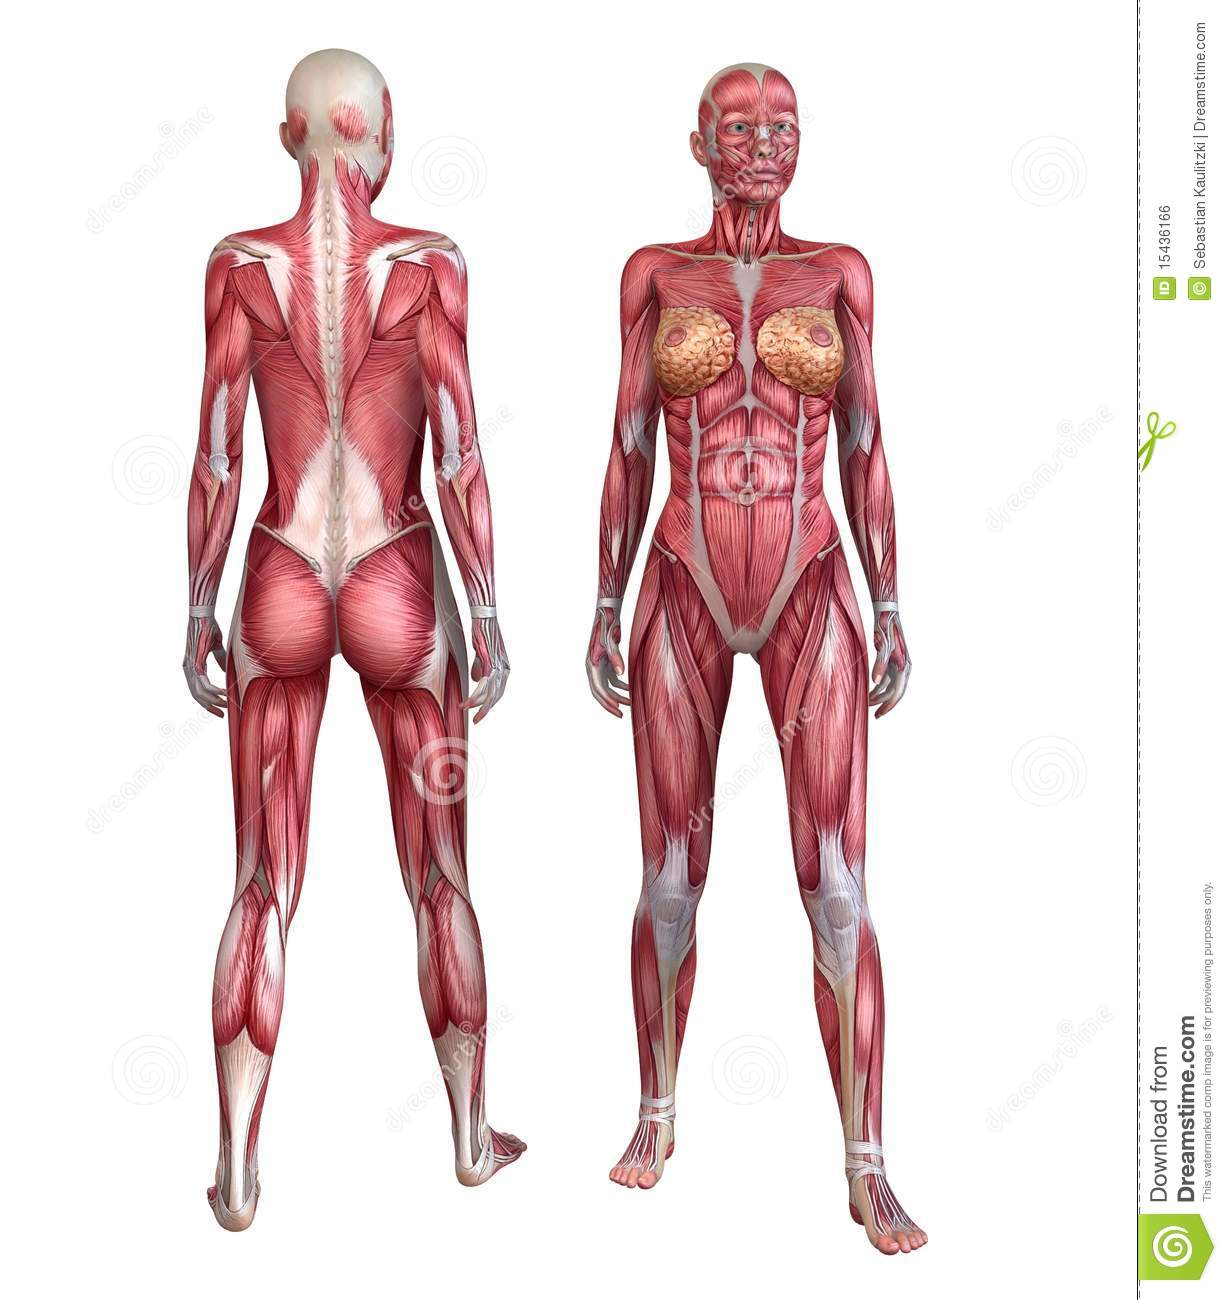 3d rendered anatomy illustration of a female body with muscle system.